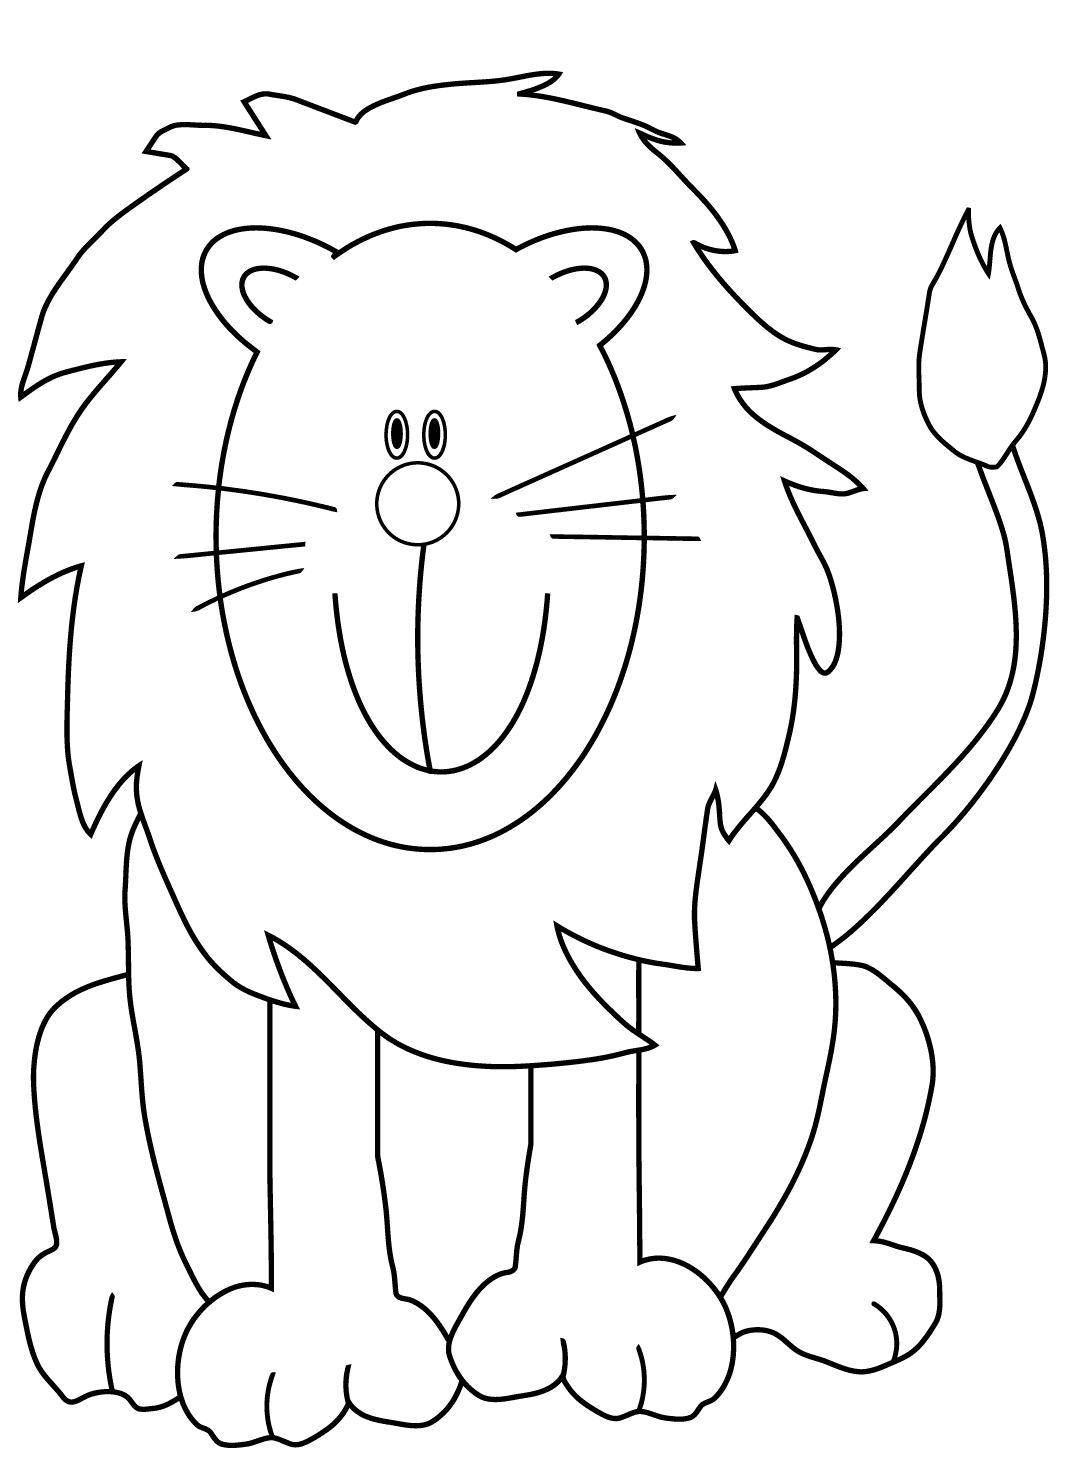 Lion Coloring Pages For Preschoolers